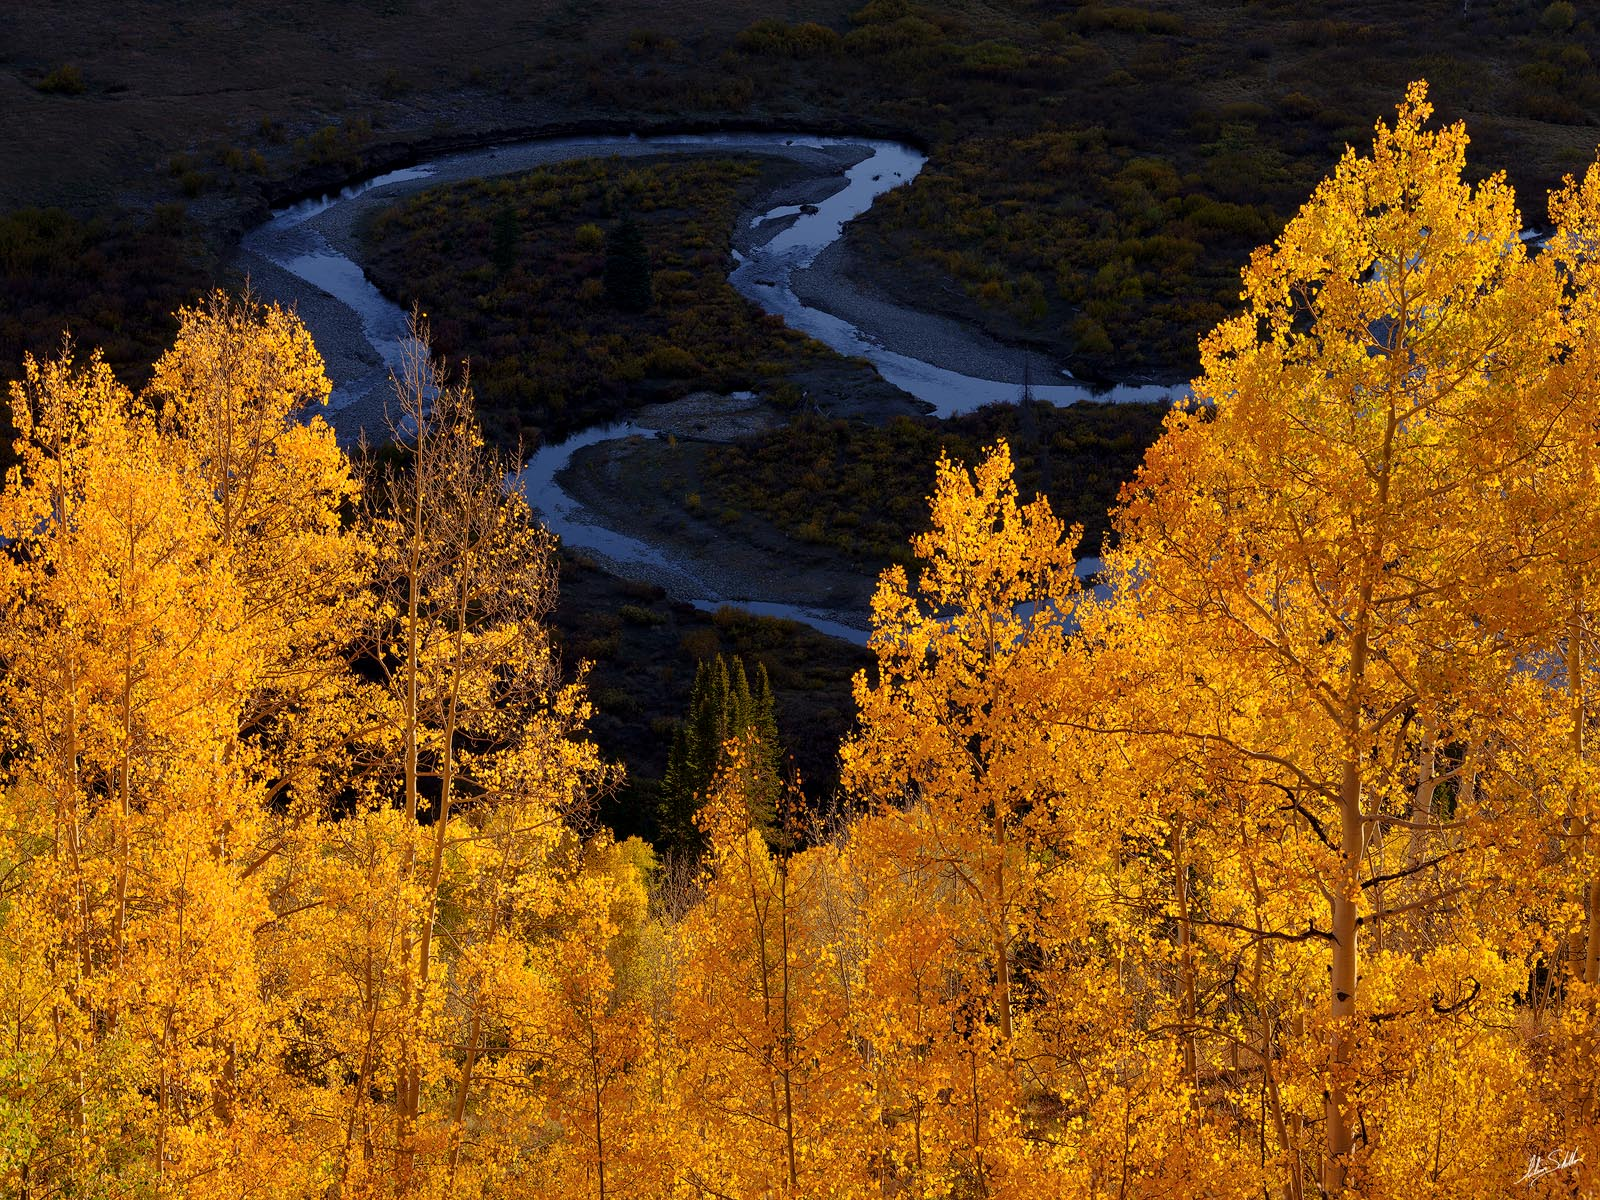 Aspens, Autumn, CO, Colorado, Crested Butte, East River, Fall, Tree, Trees, Yellow, photo